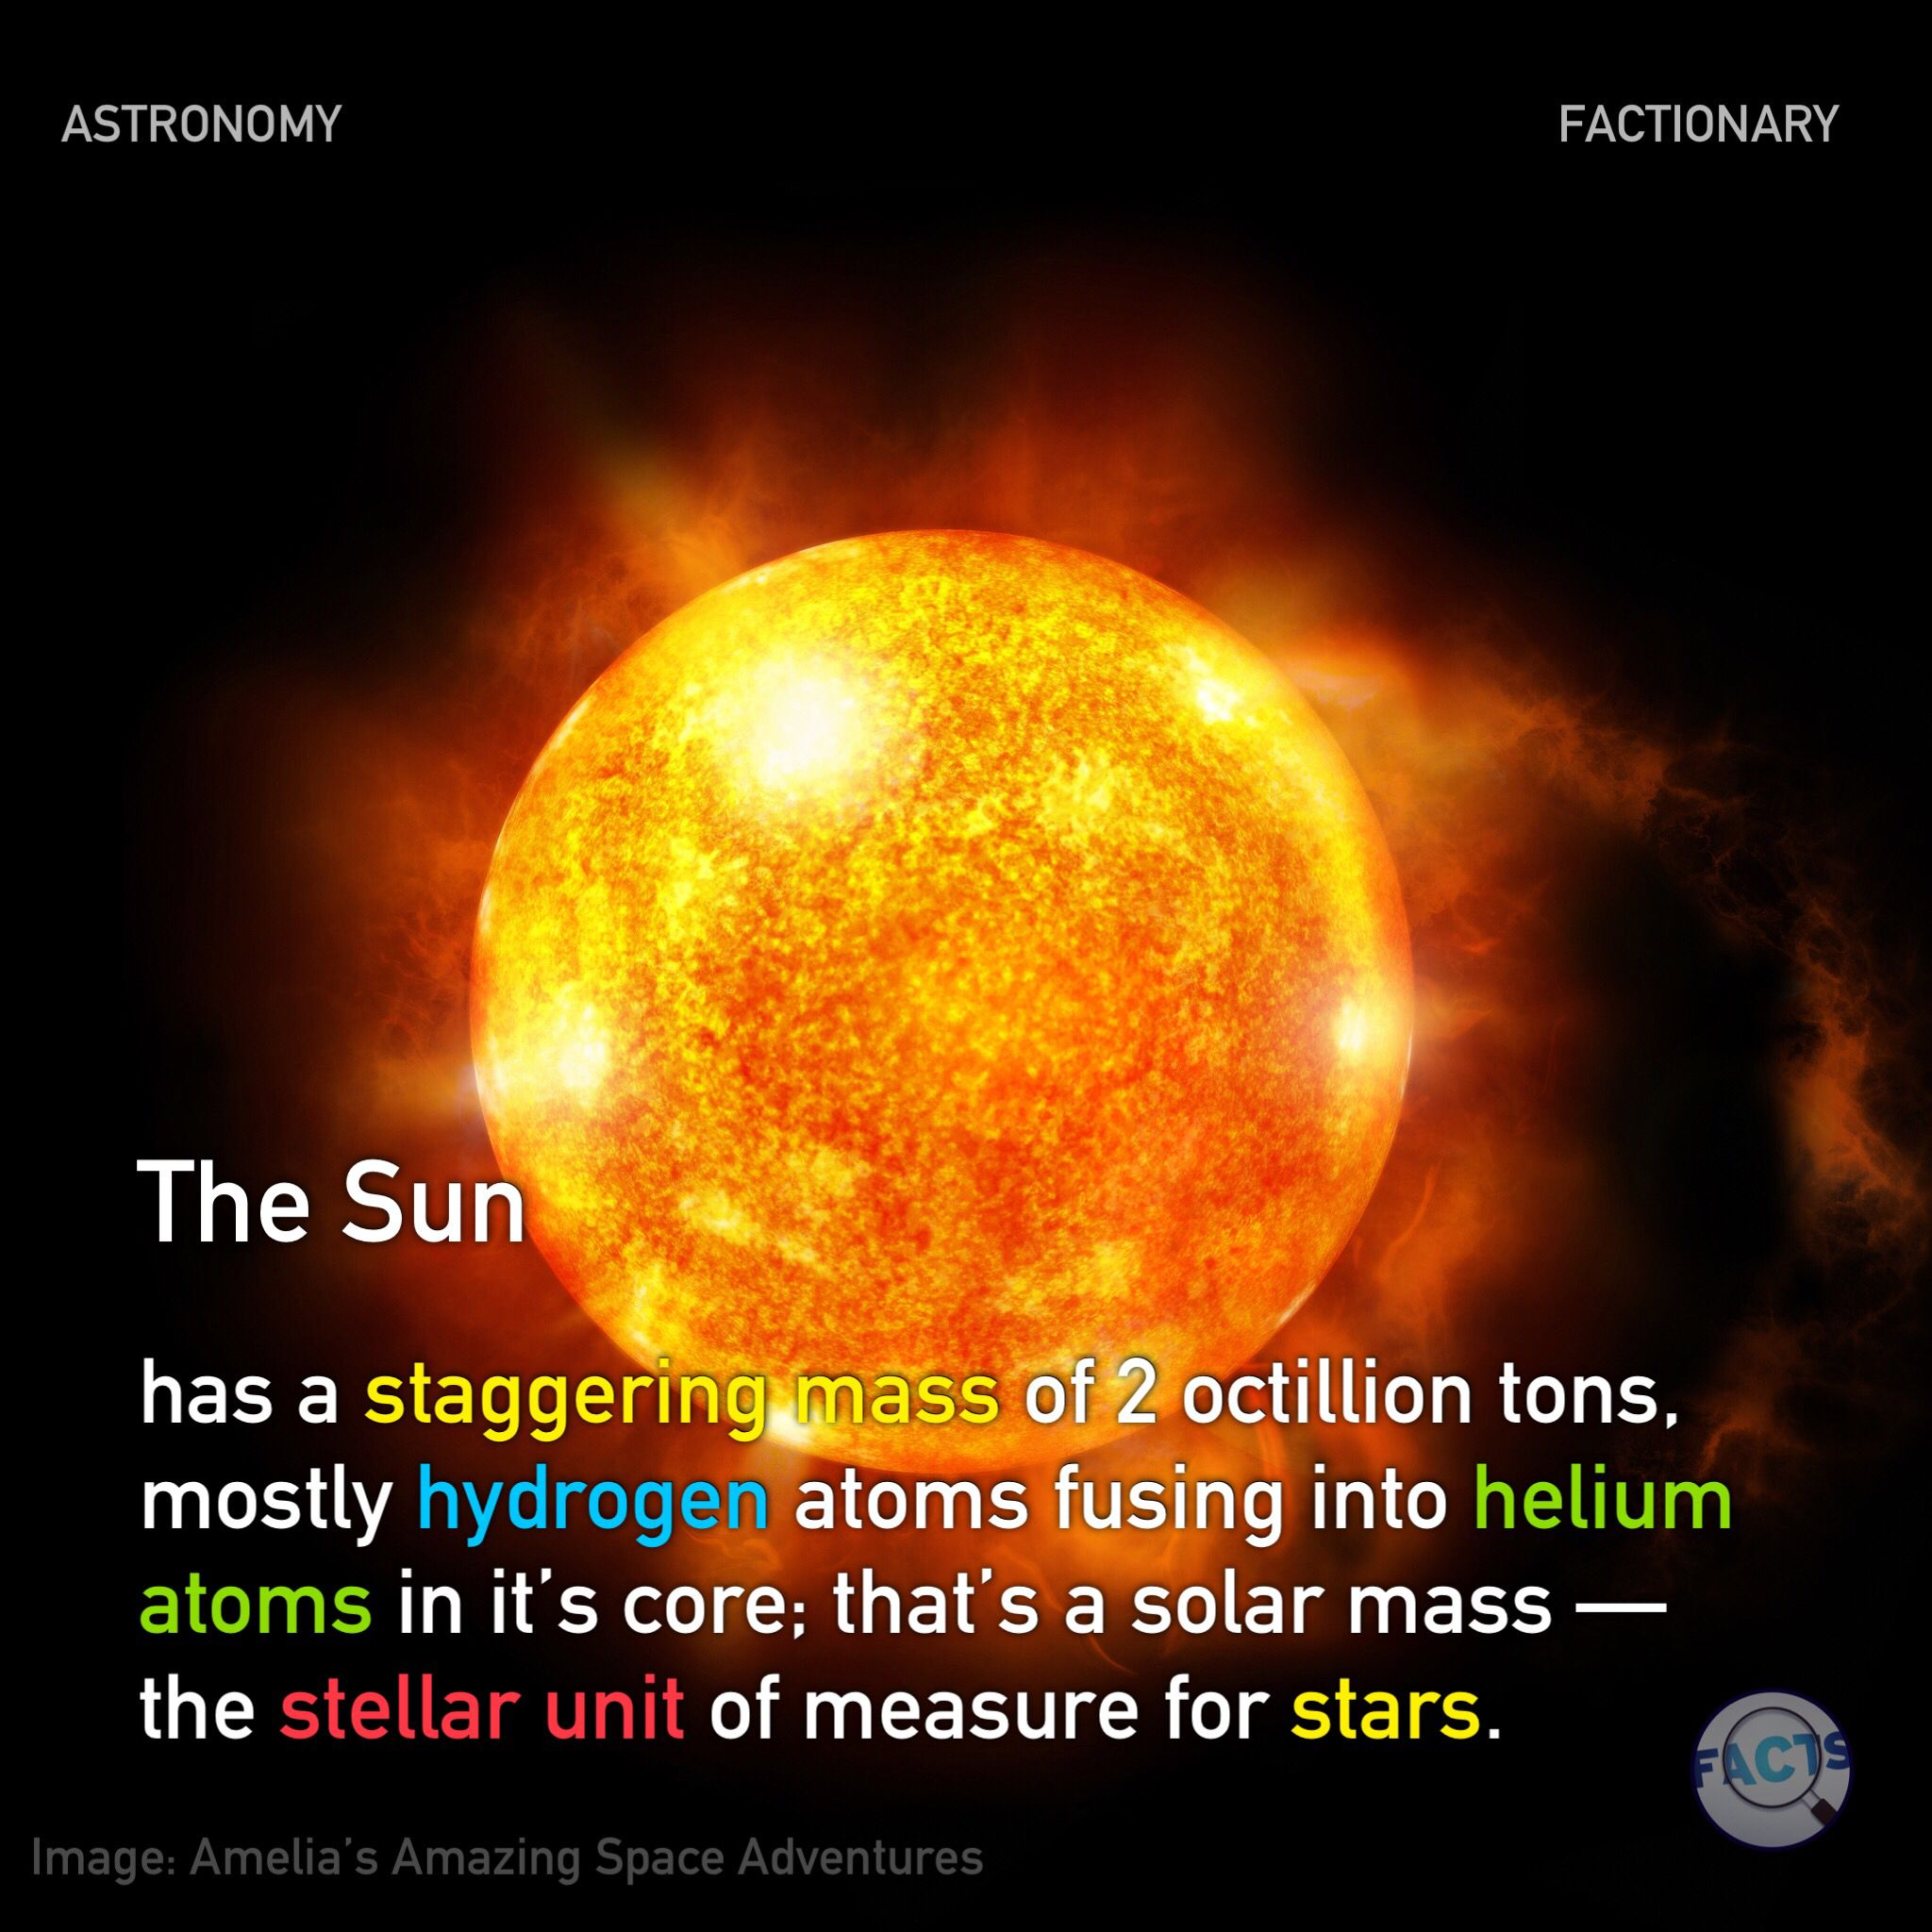 The Sun has a staggering mass of 2 octillion tons, mostly